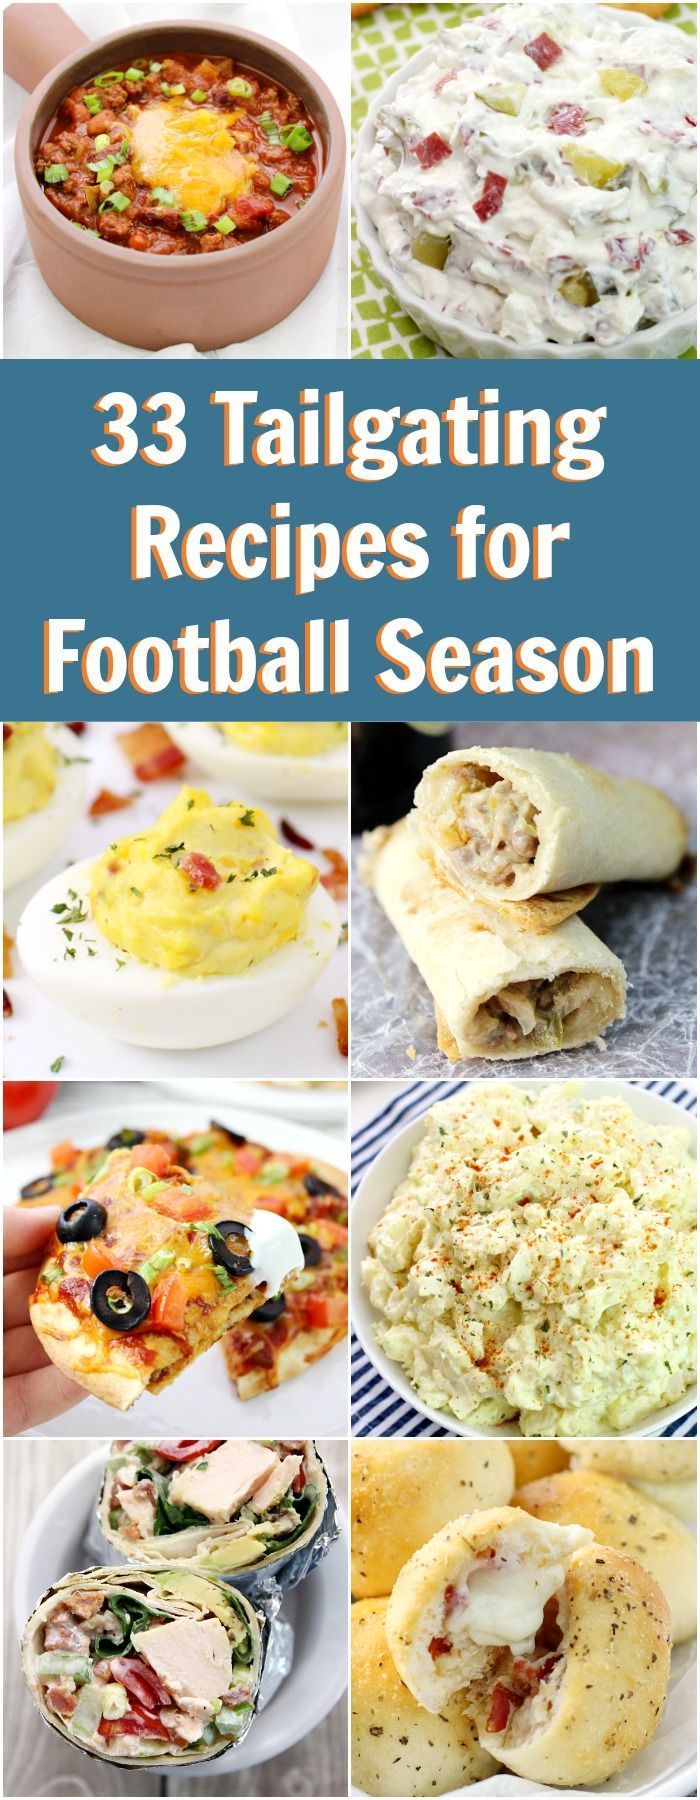 33 Tailgating Recipes for Football Season